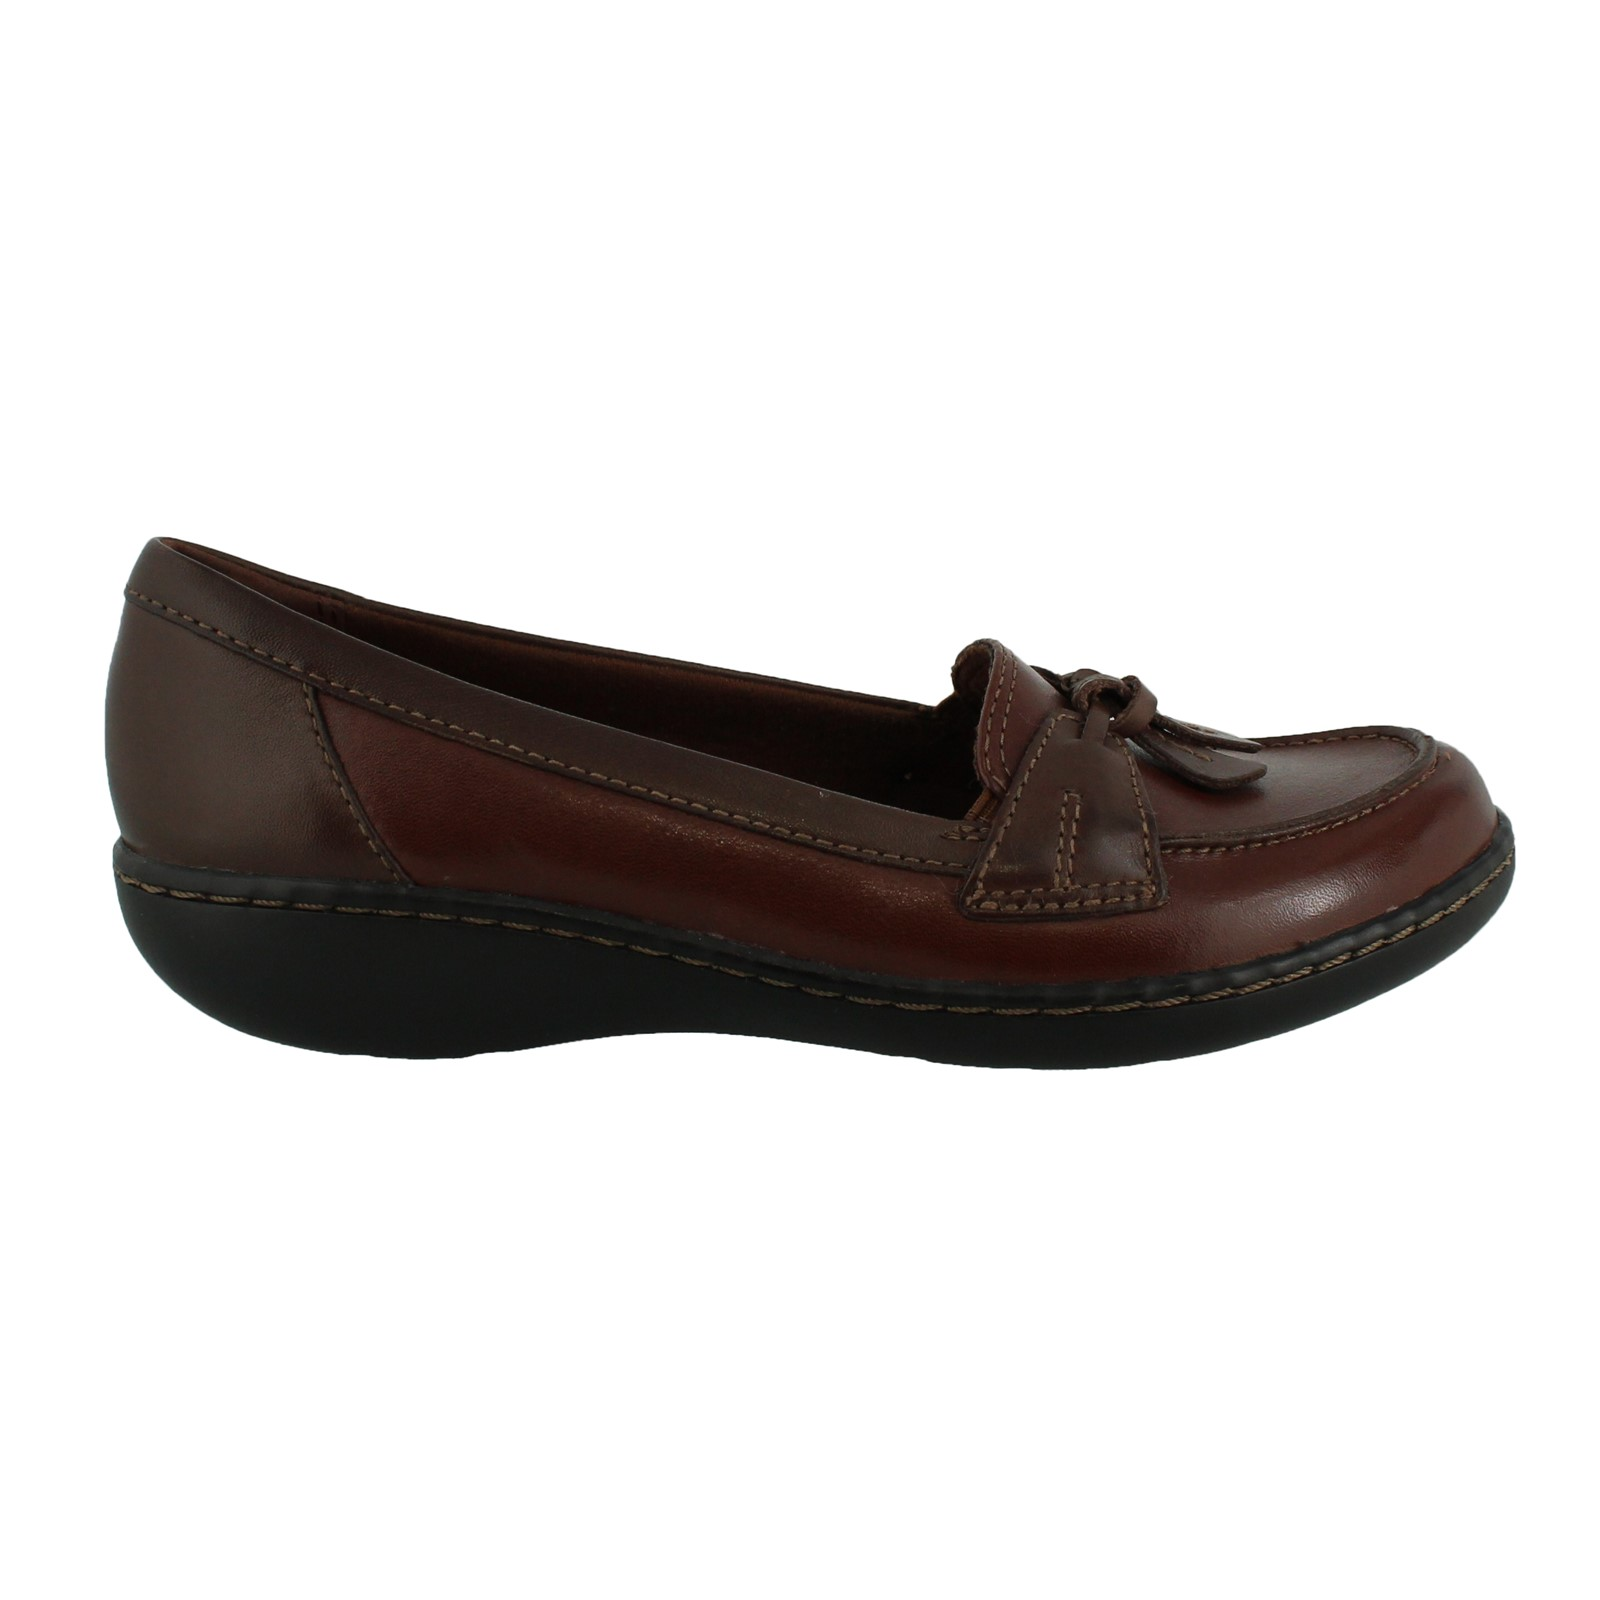 0a7c4943cce Home  Women s Clarks